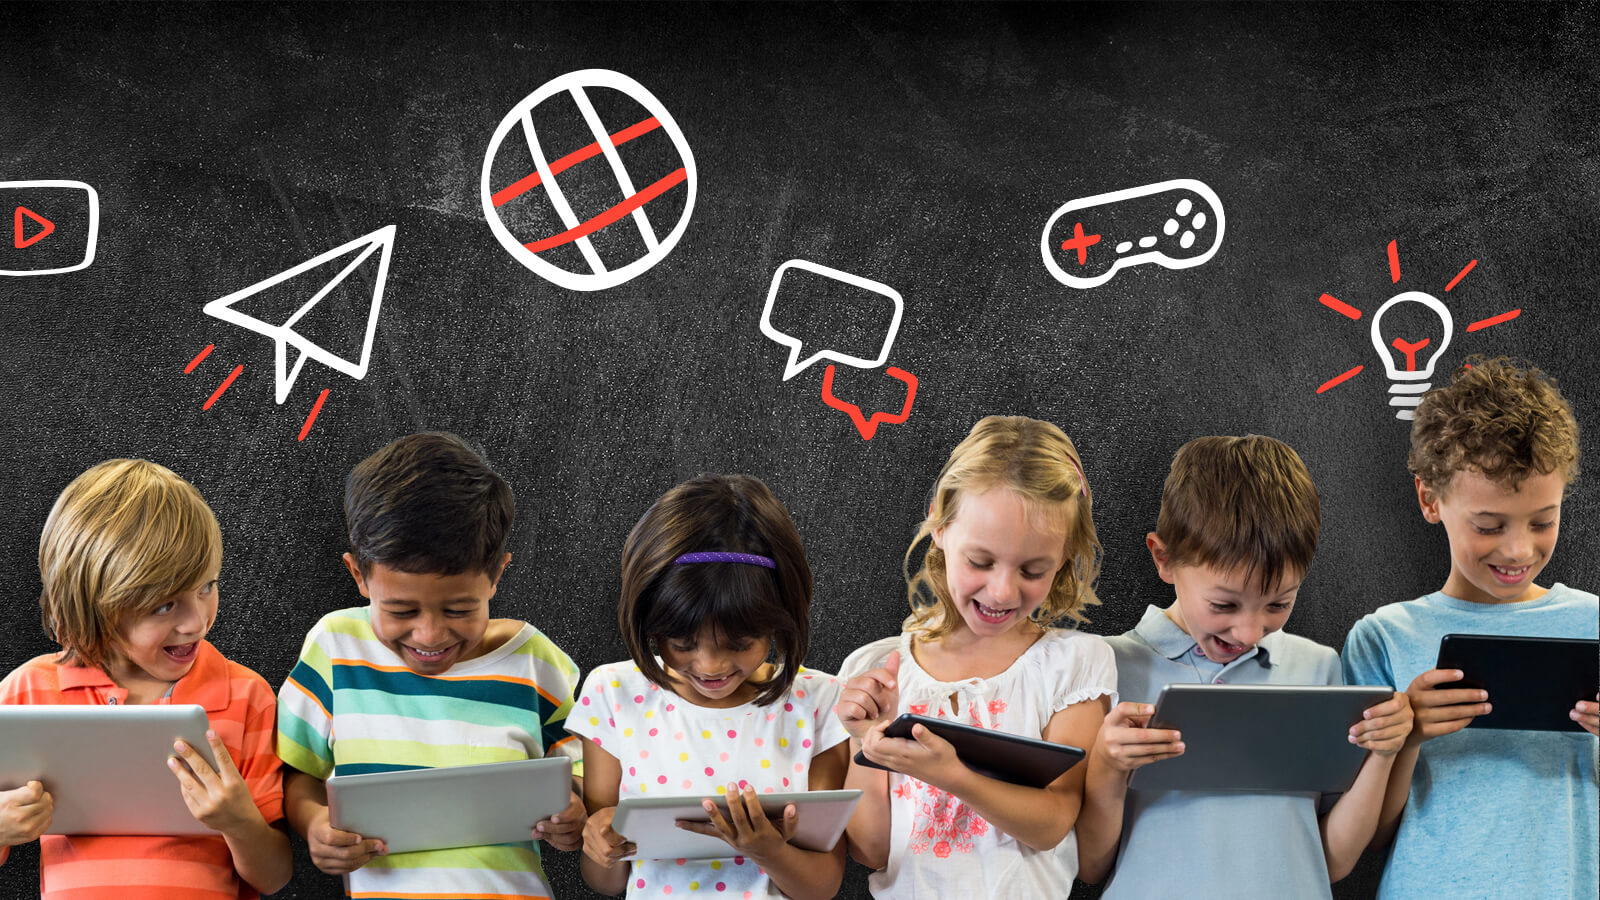 line of children on digital devices with chalk illustrations behind them